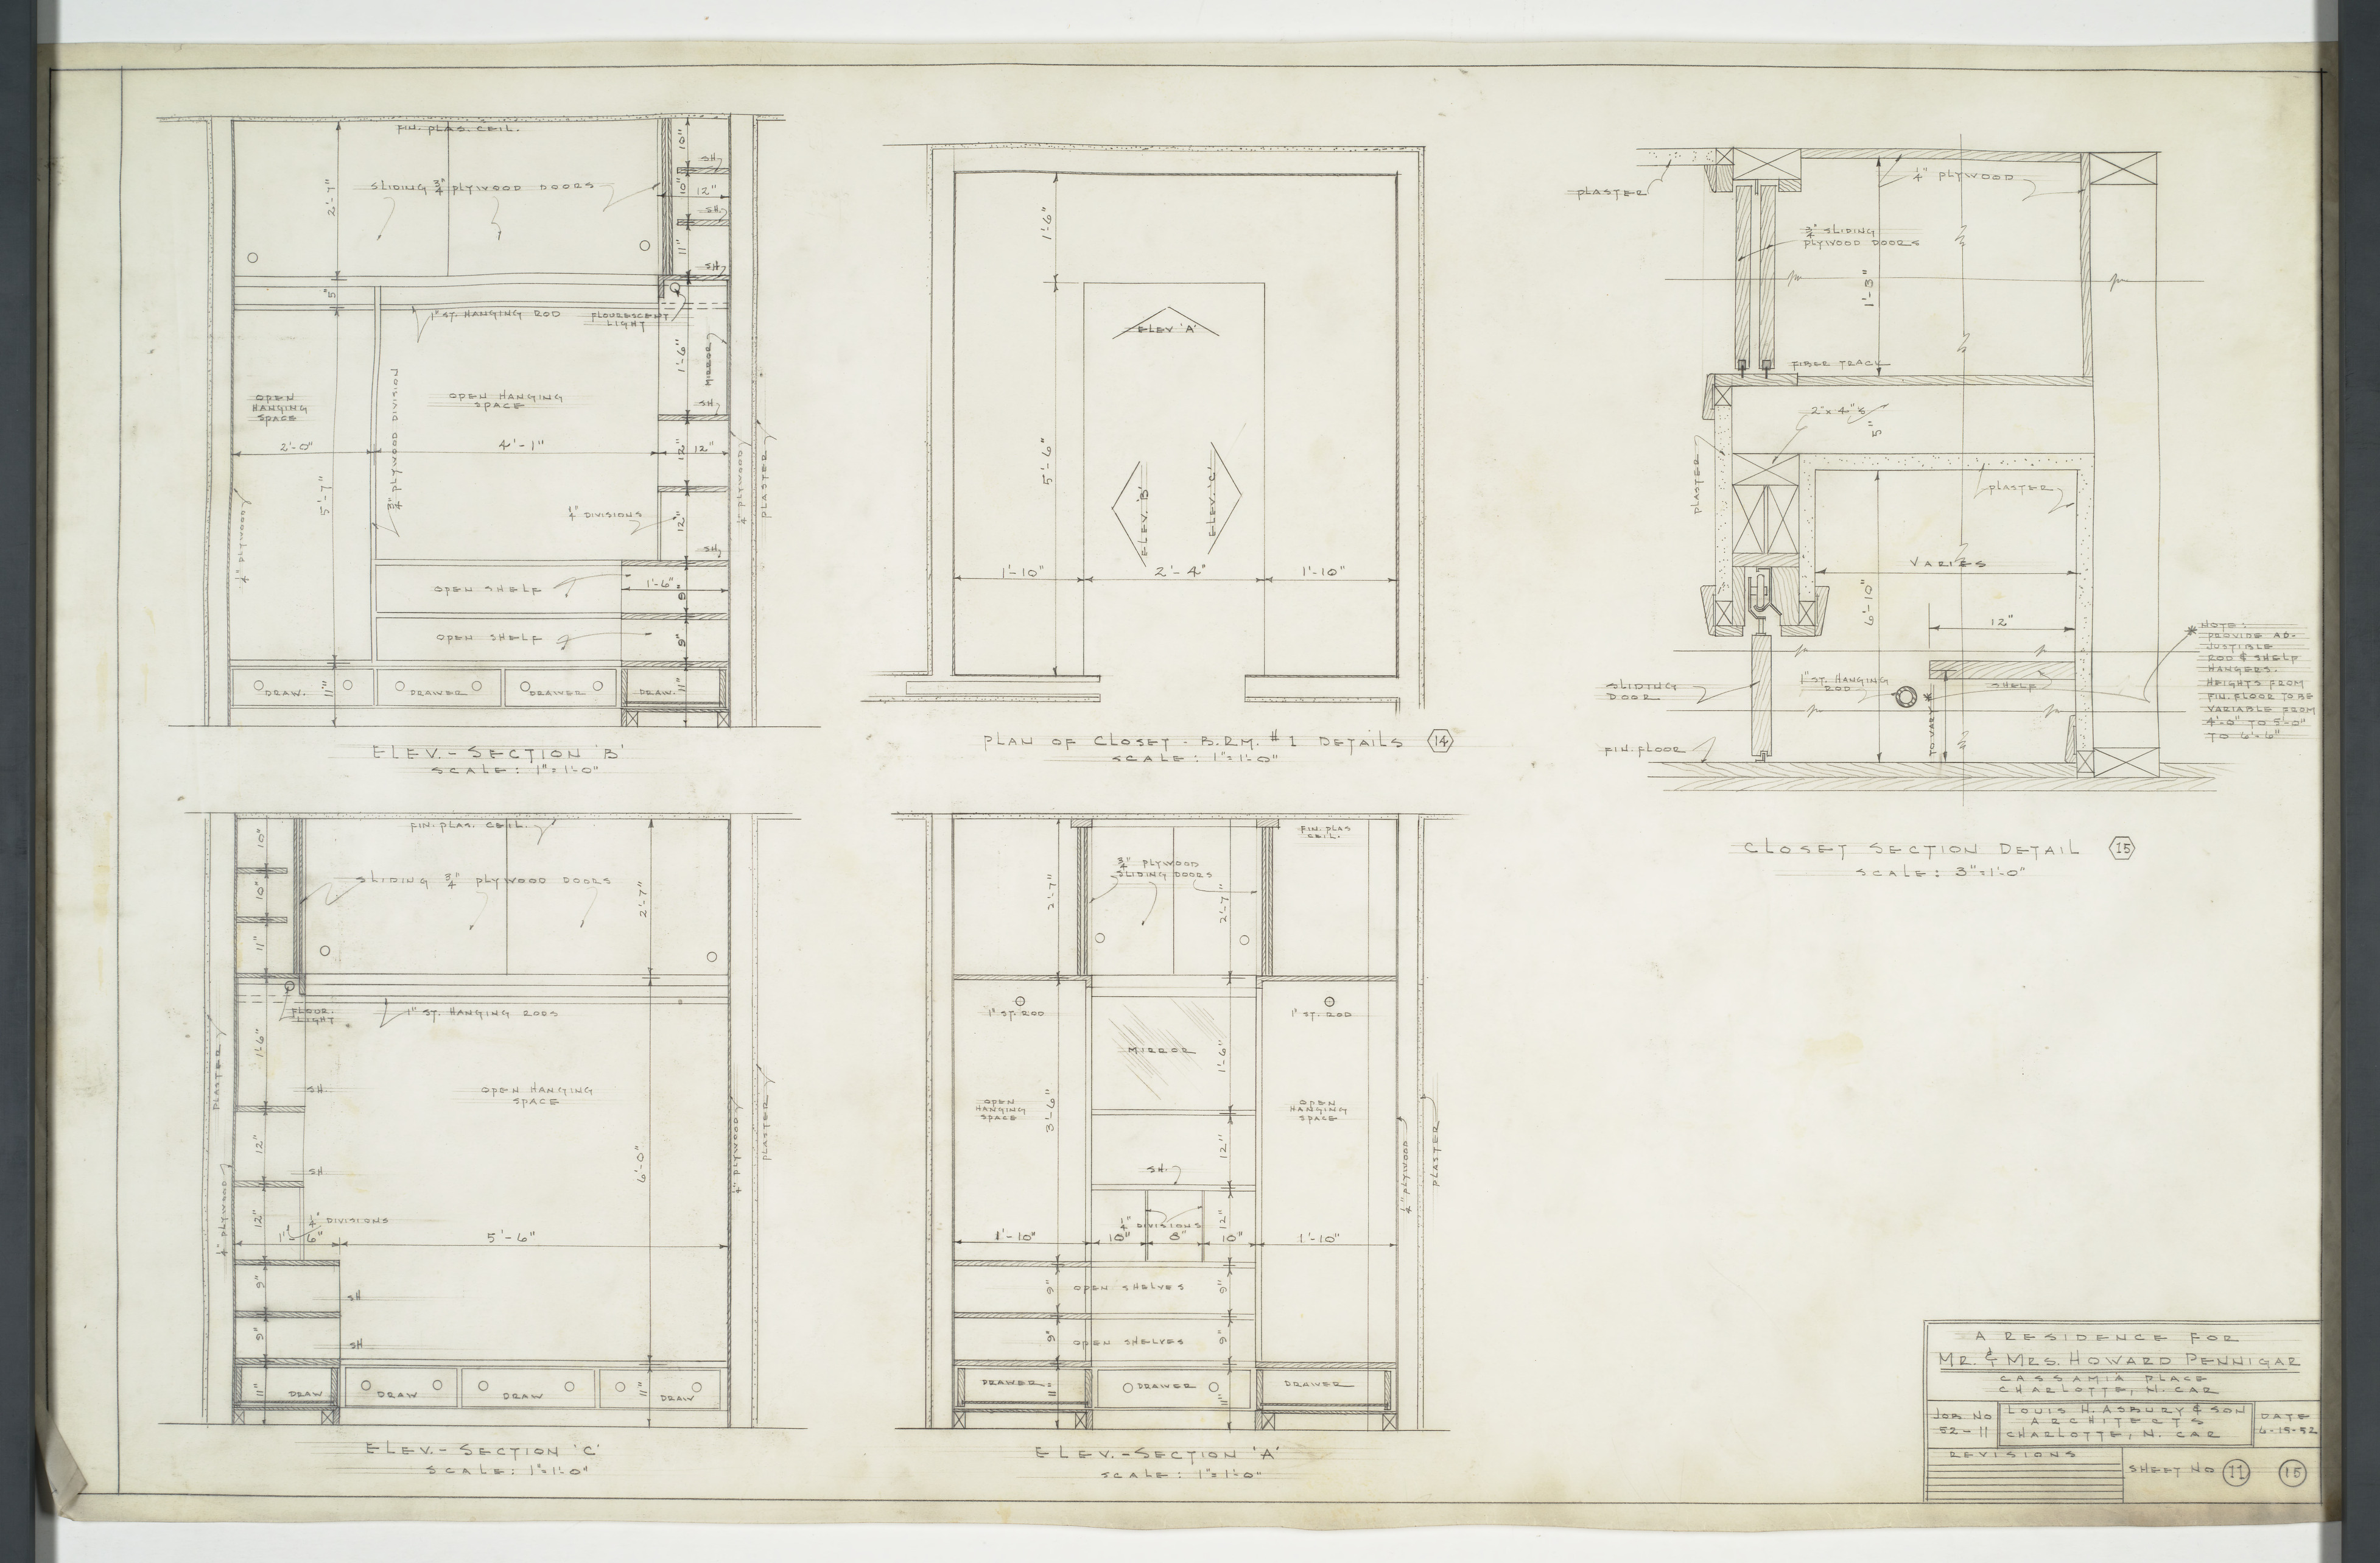 Closet Elevation Floor Plans And Sections Pennigar